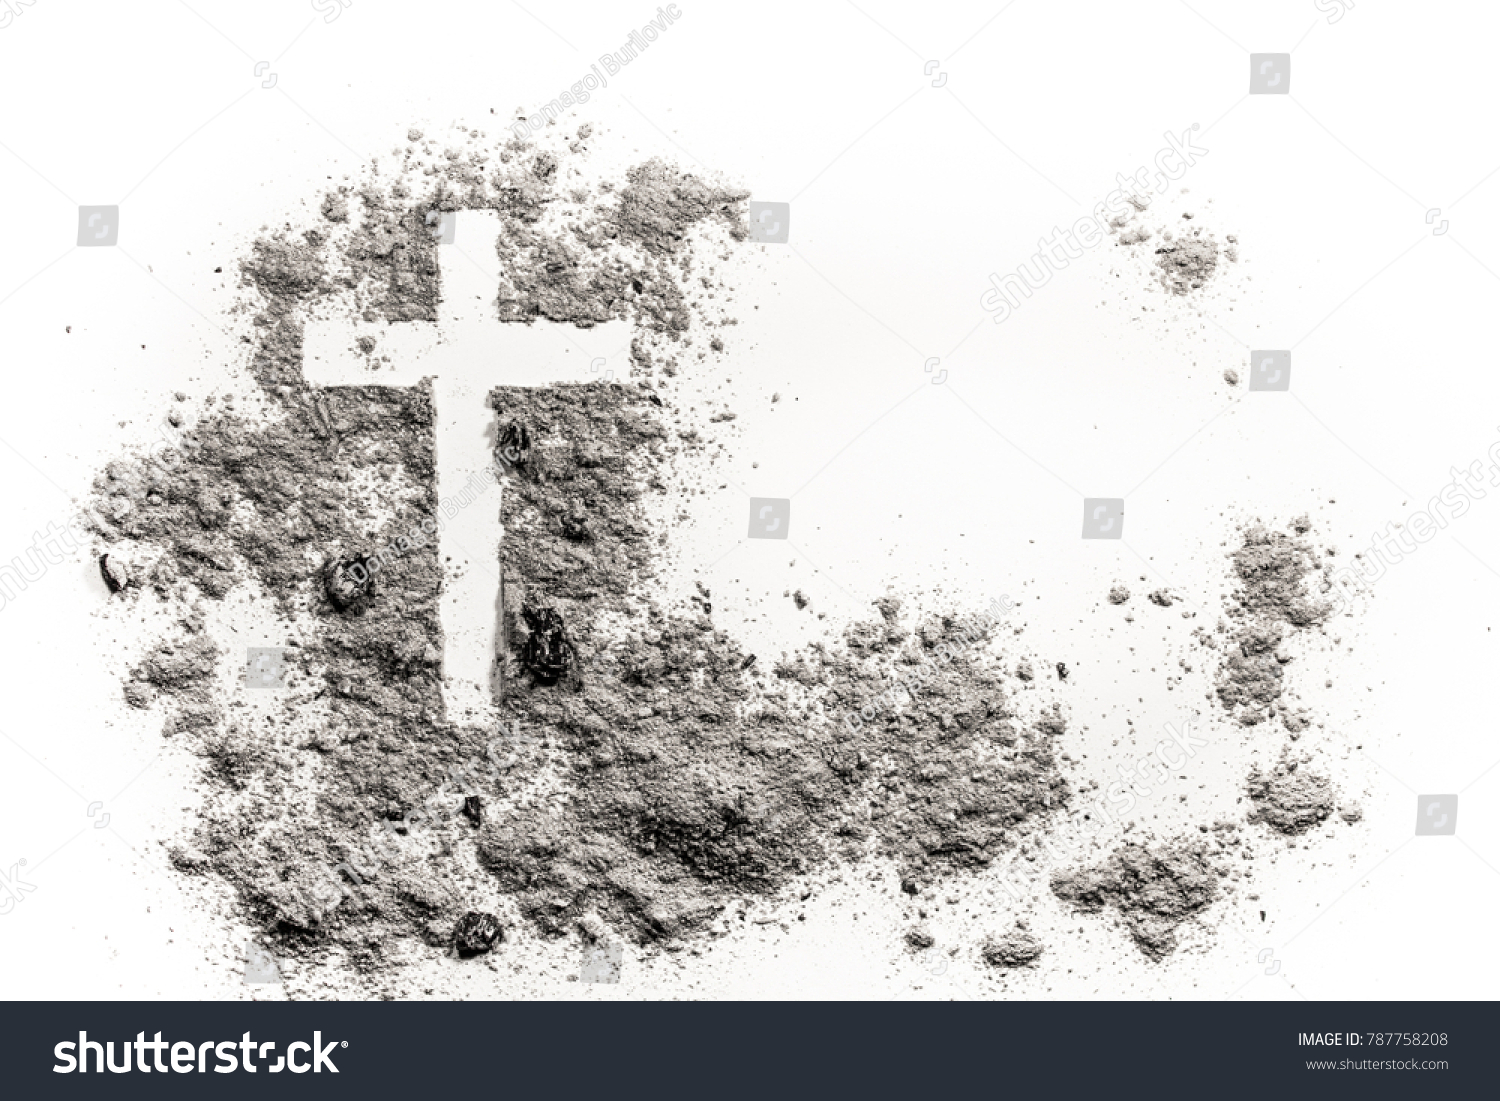 Christian cross crucifix drawing ash dust stock photo 787758208 christian cross or crucifix drawing in ash dust or sand as symbol of religion buycottarizona